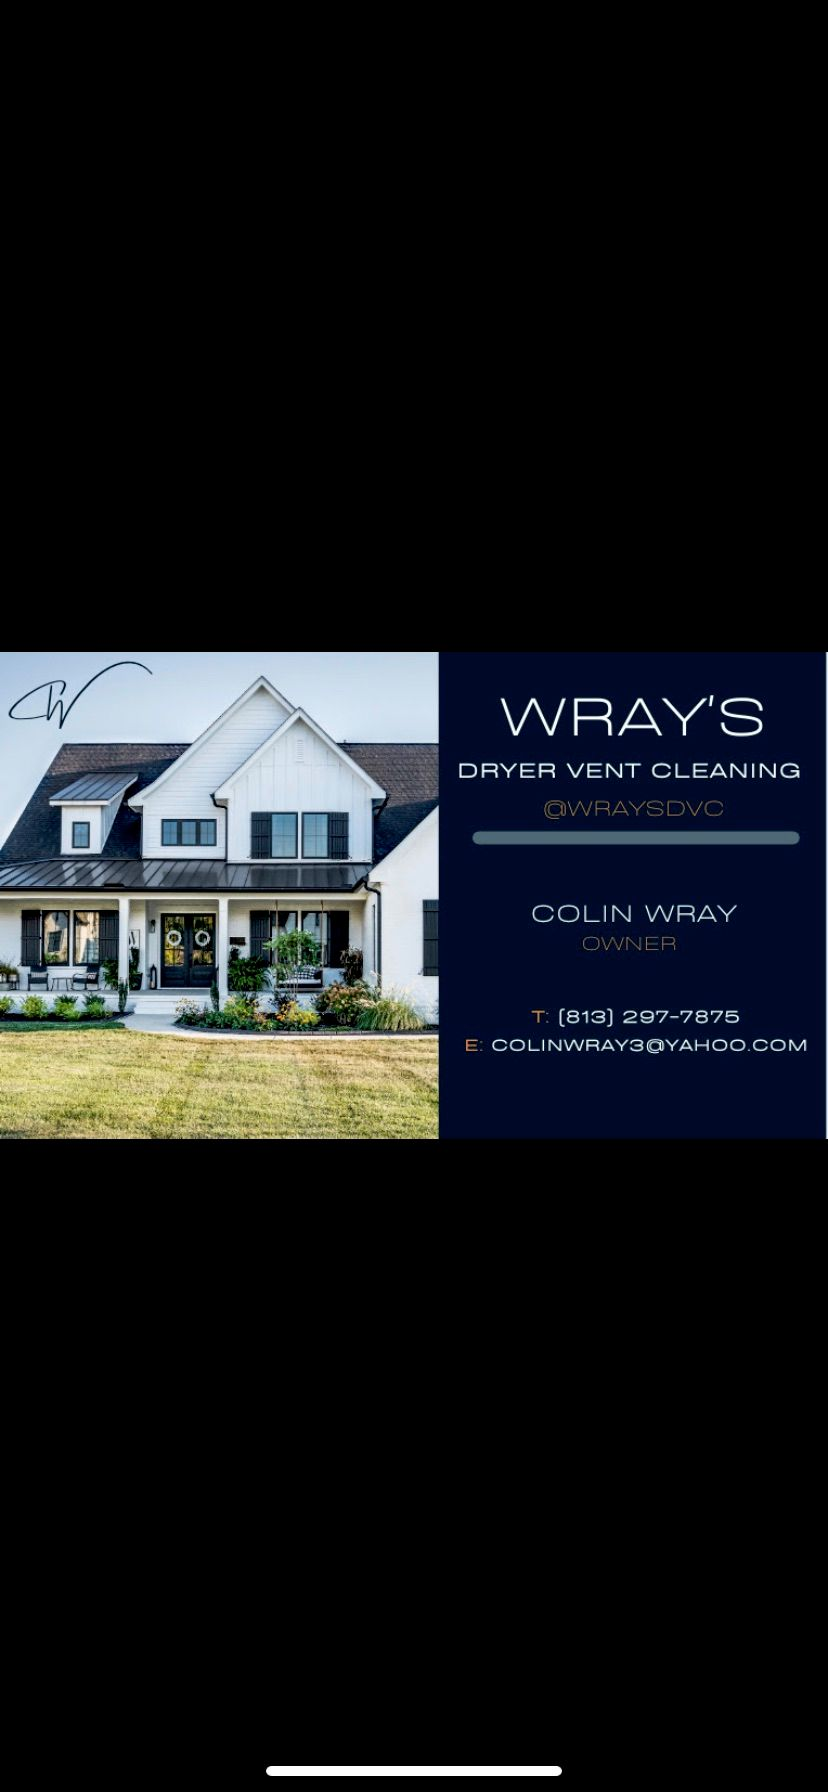 Wray's Dryer Vent Cleaning